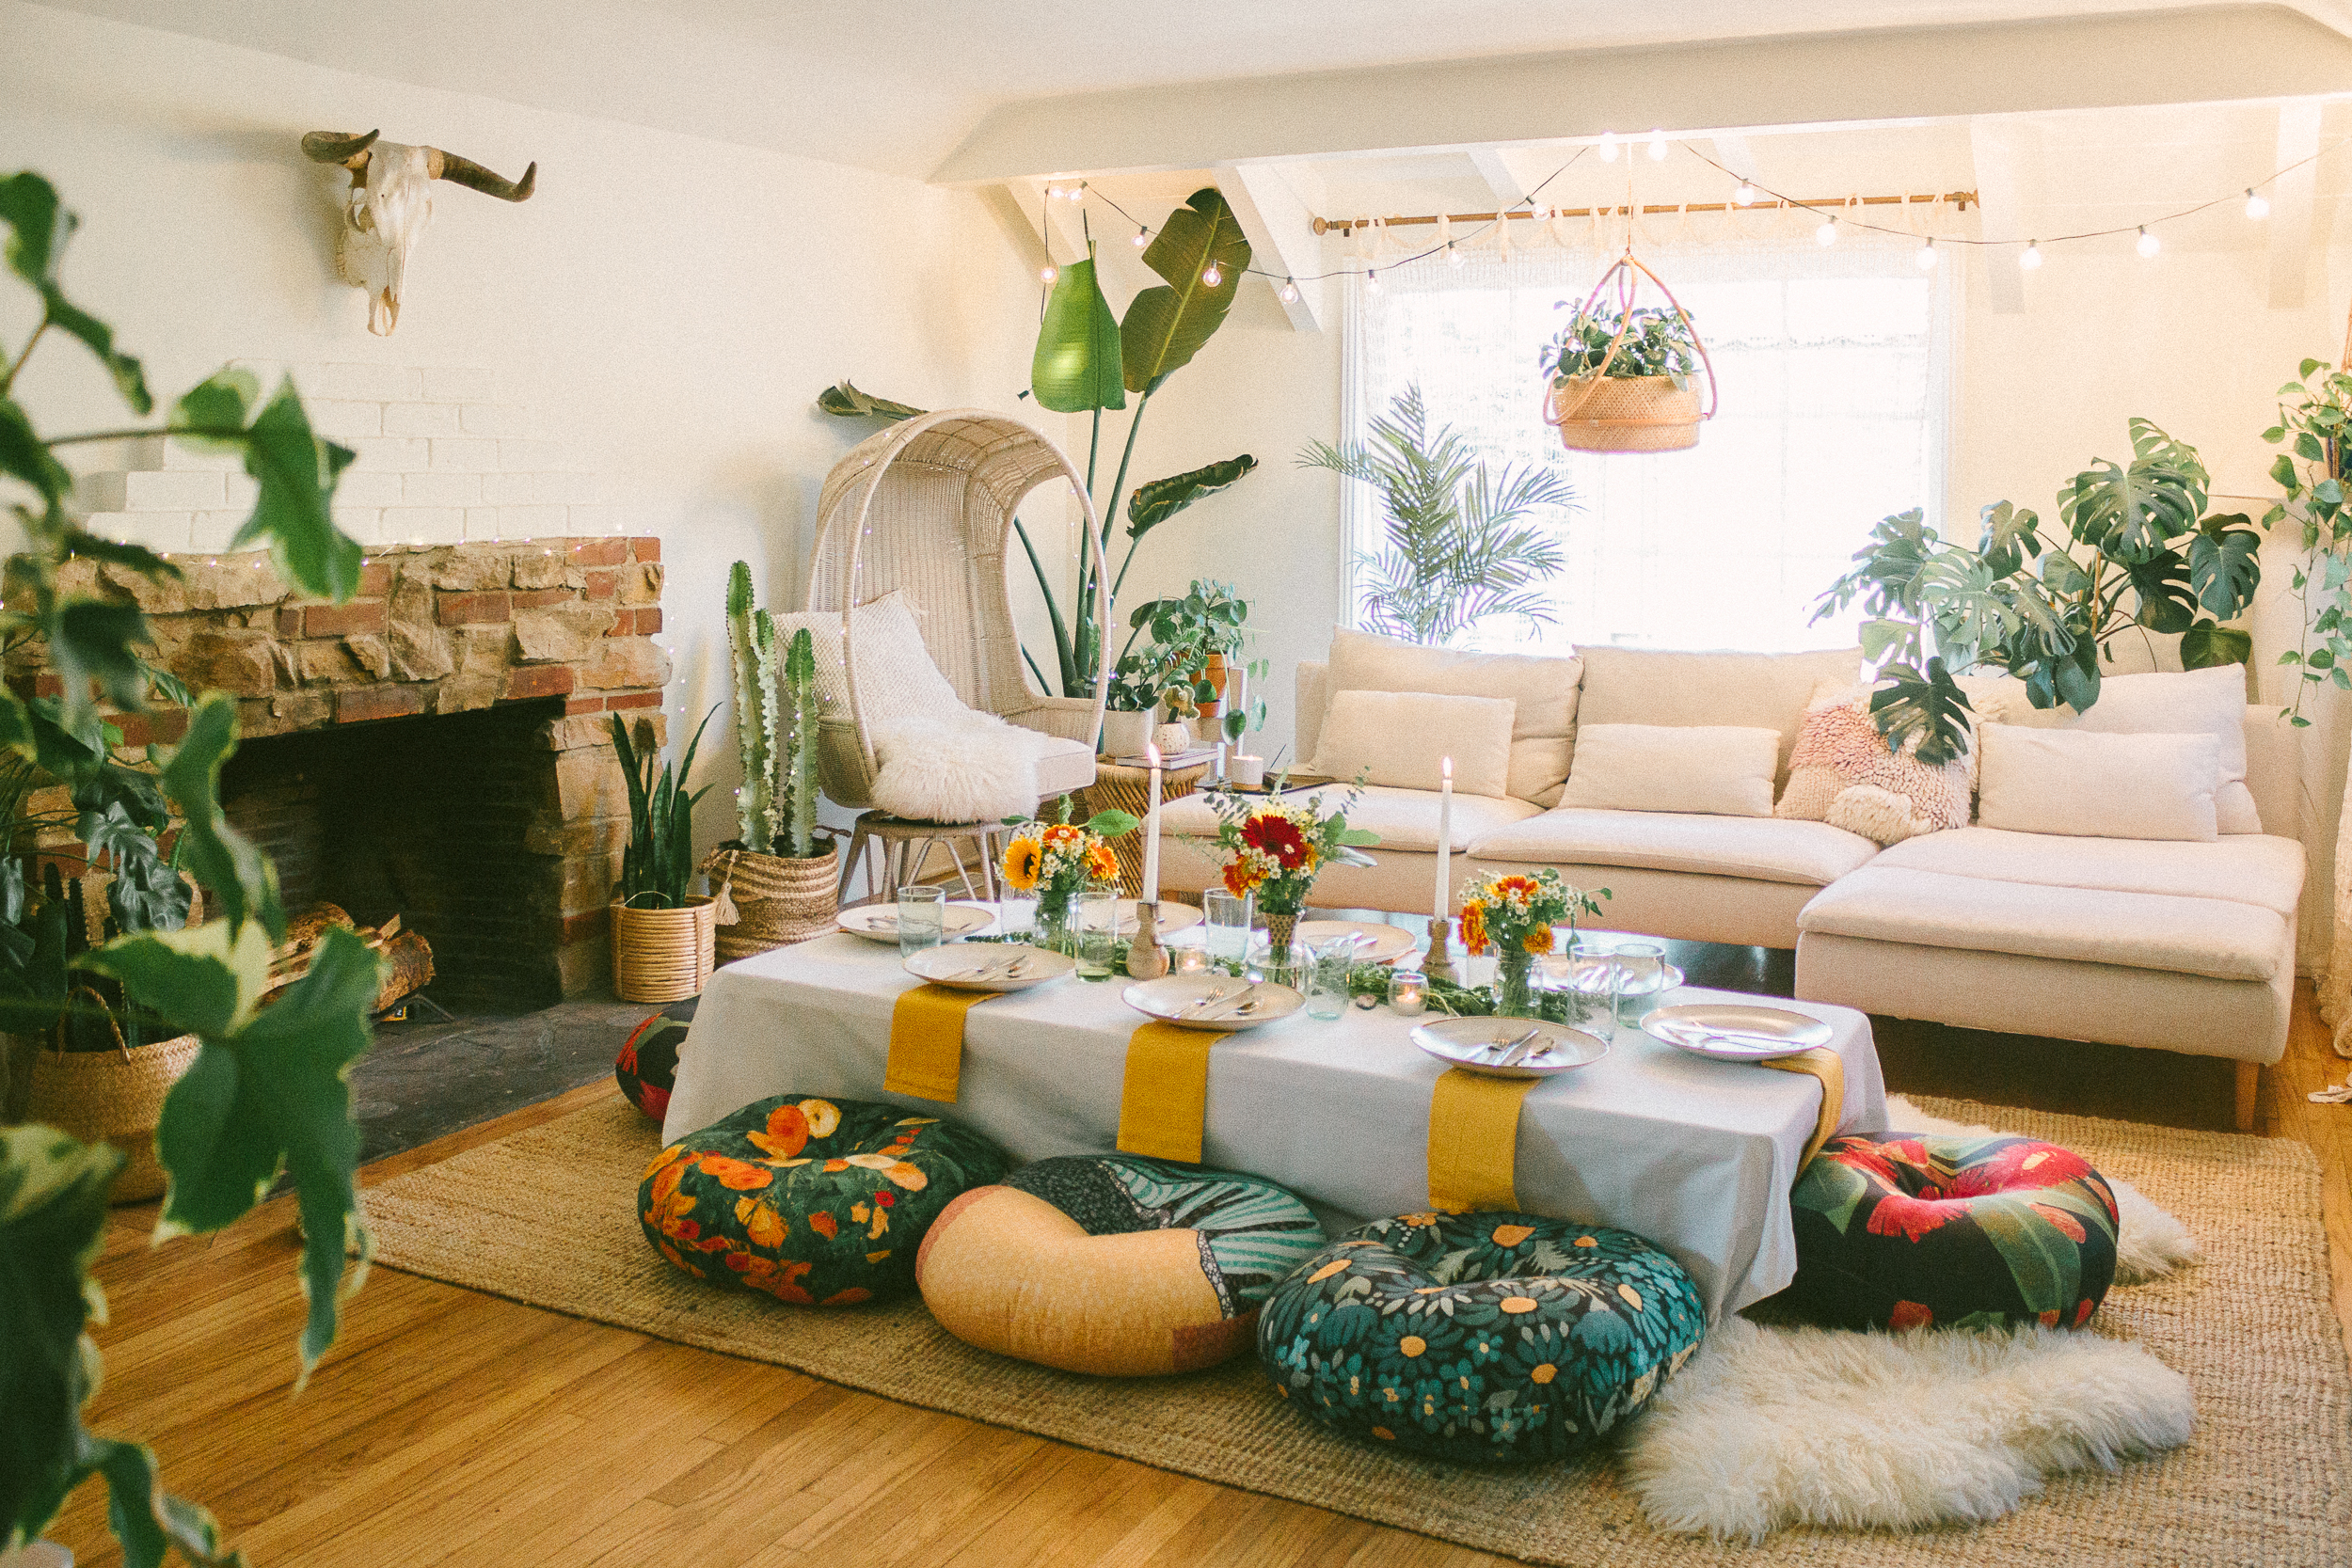 How To Style a Fun Floor-Seated Friendsgiving — Black & Blooms